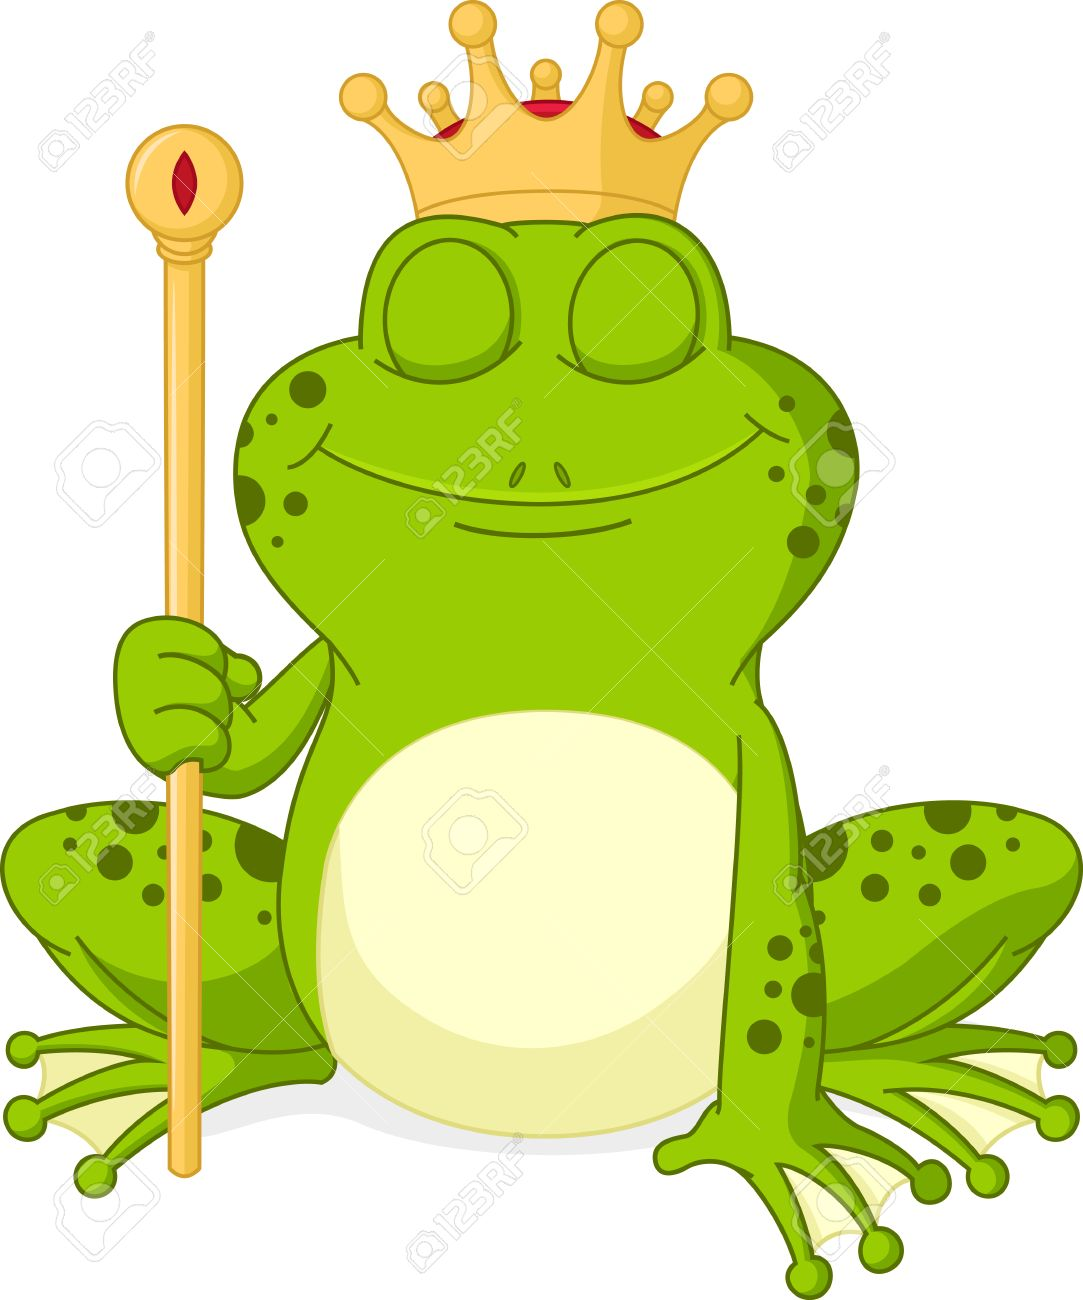 Prince Frog Cartoon Royalty Free Cliparts, Vectors, And Stock ...